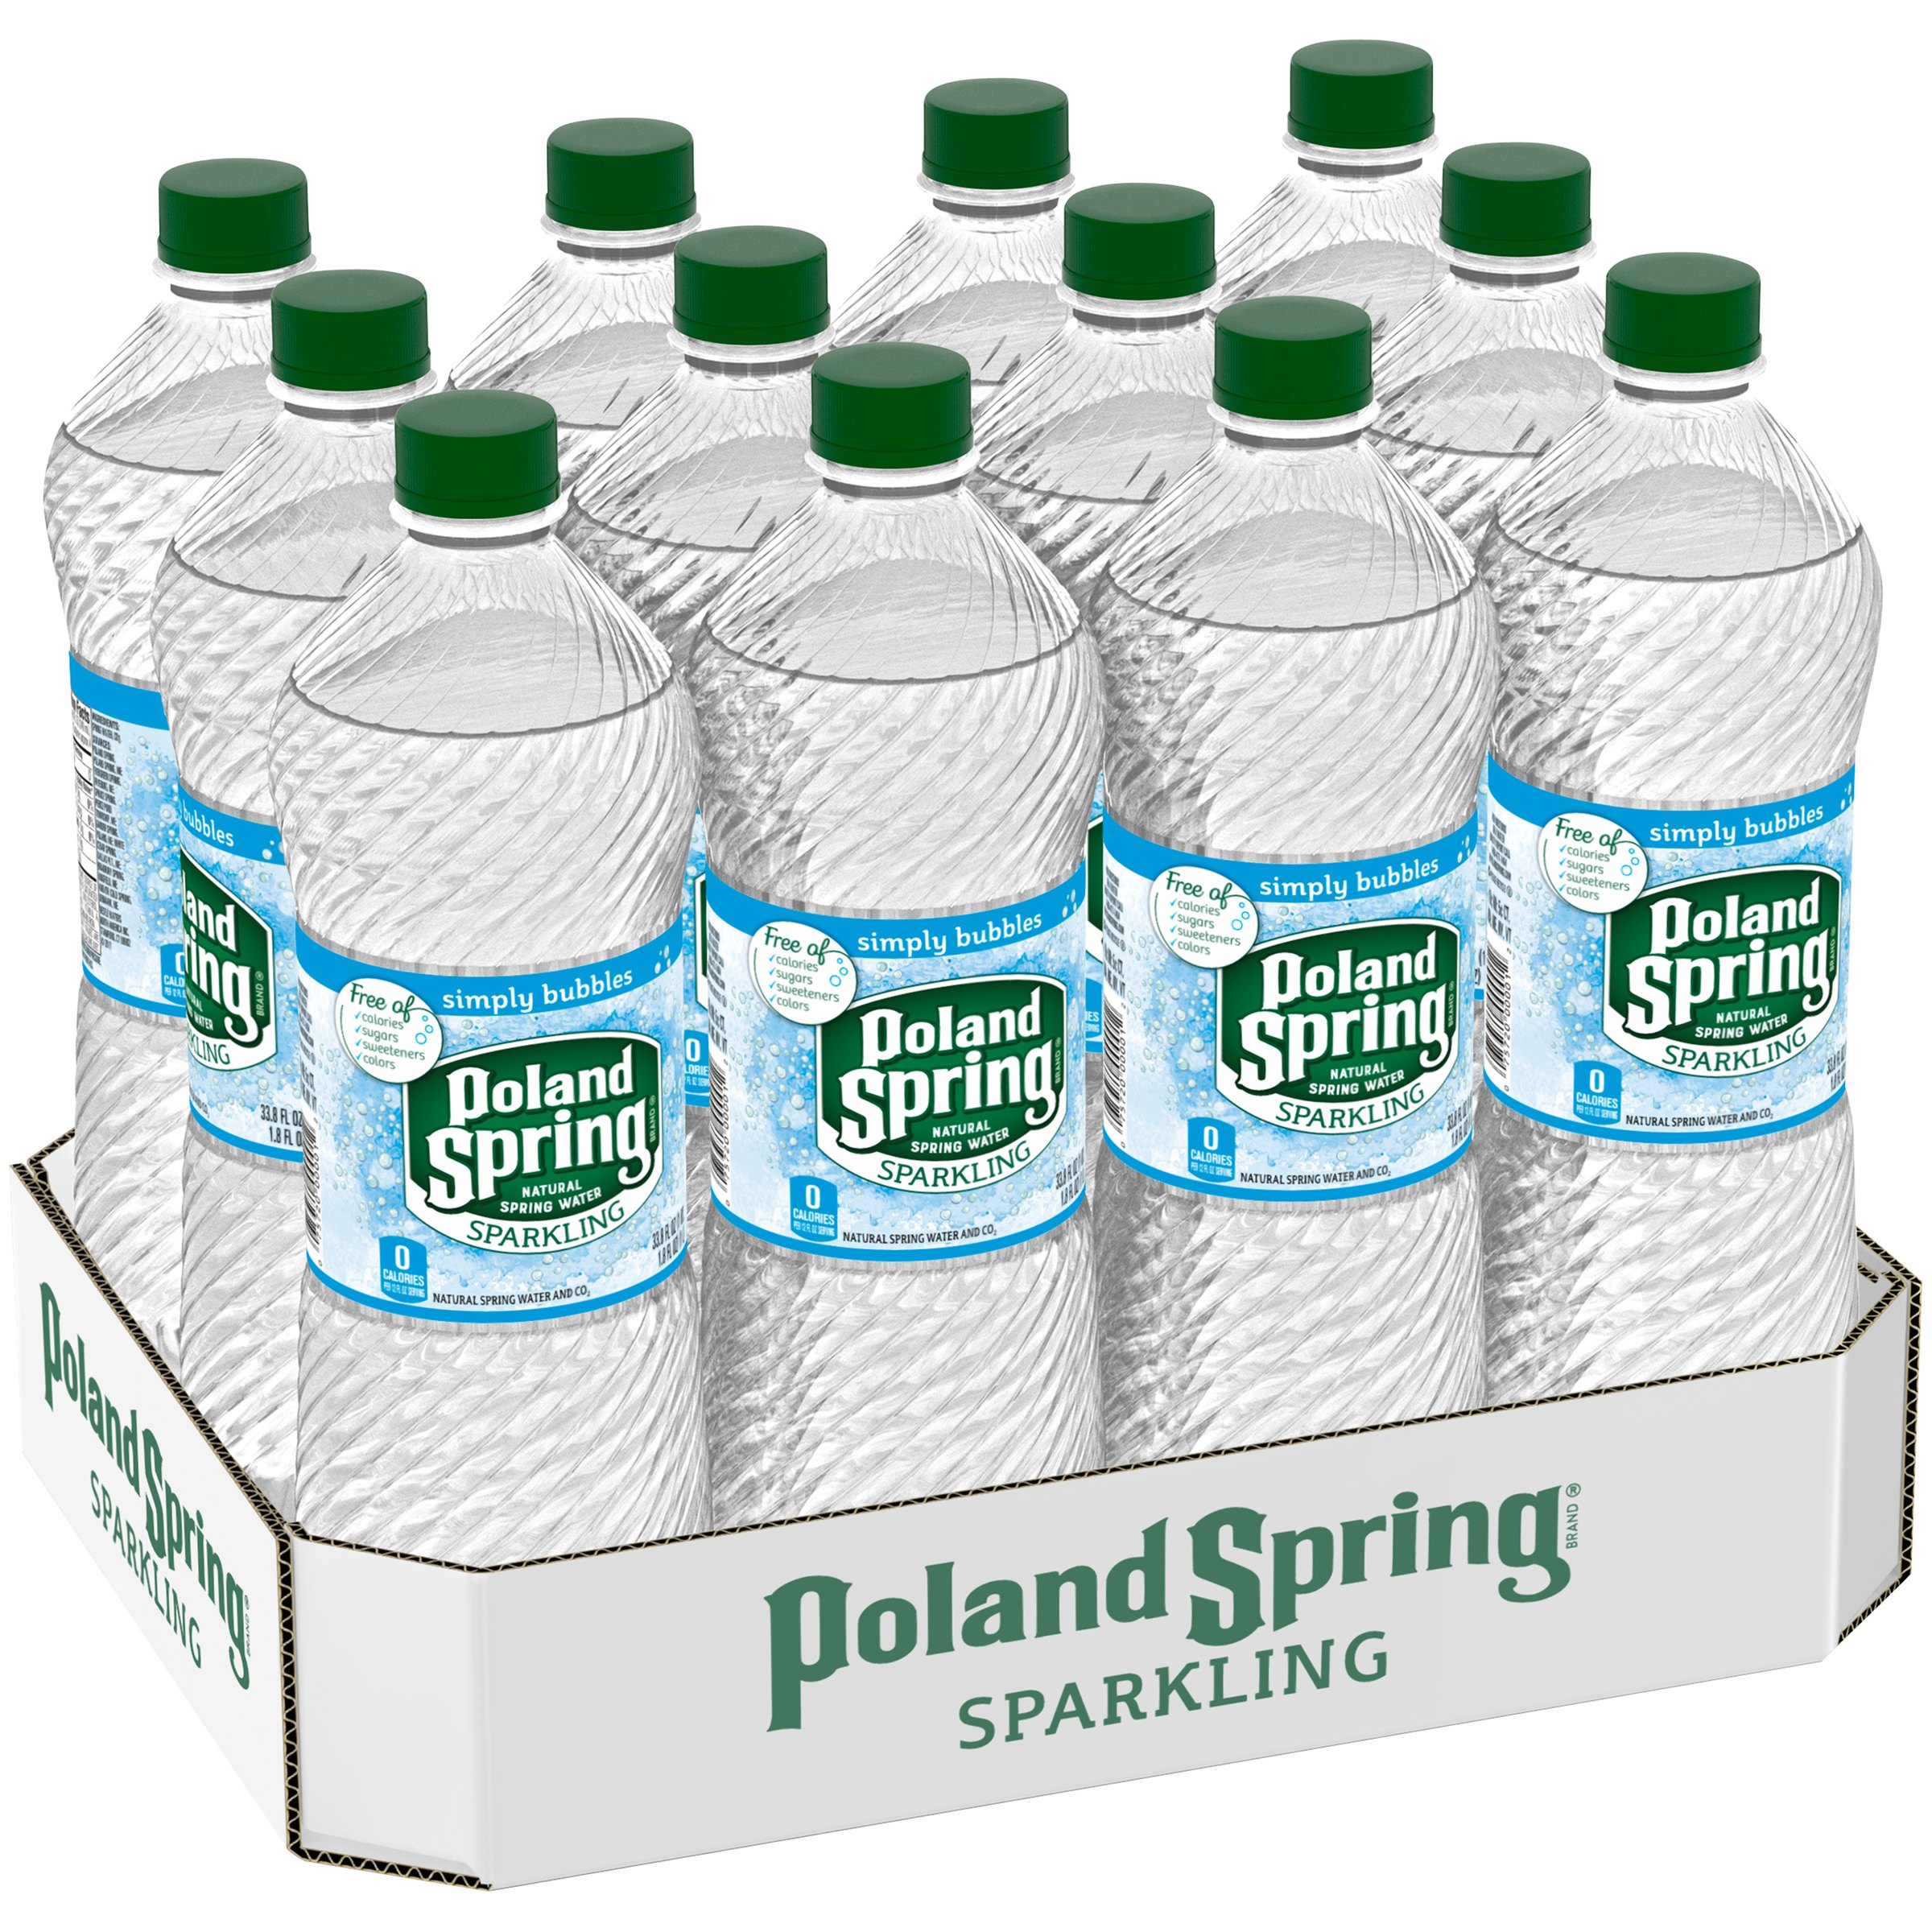 Poland Spring Simply Bubbles Sparkling Water, 33.8 Fl. Oz., 12 Count